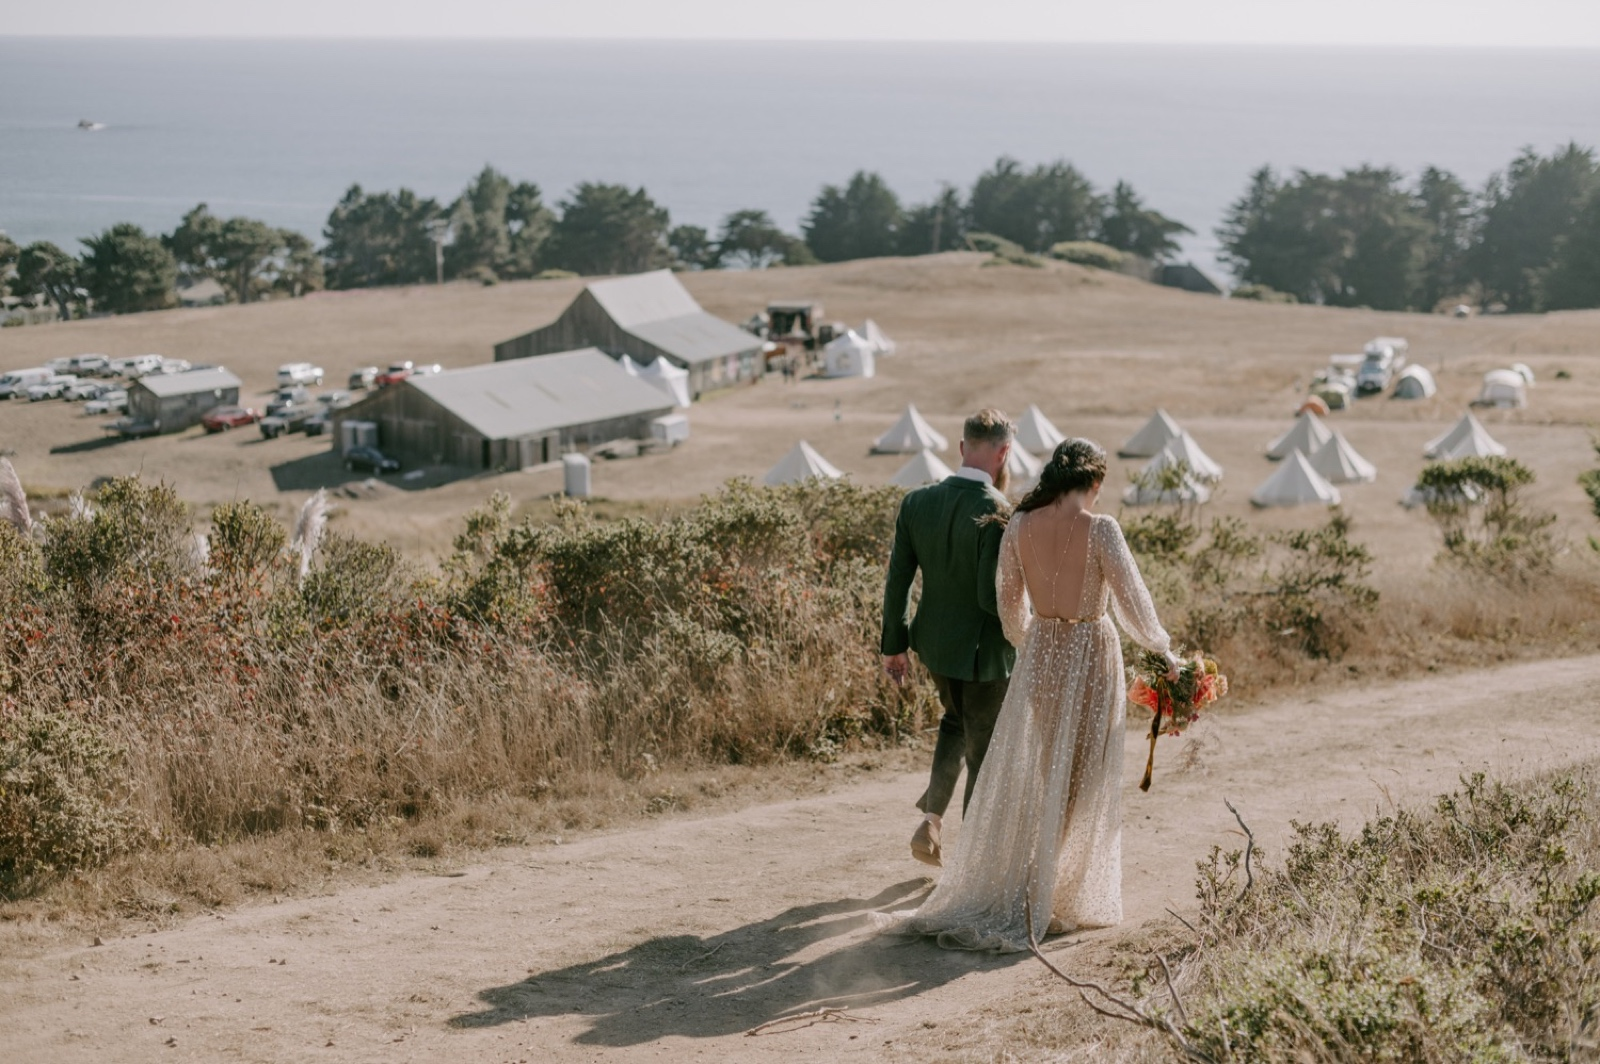 Mendocino_Wedding_Cuffeys_Cove093.JPG